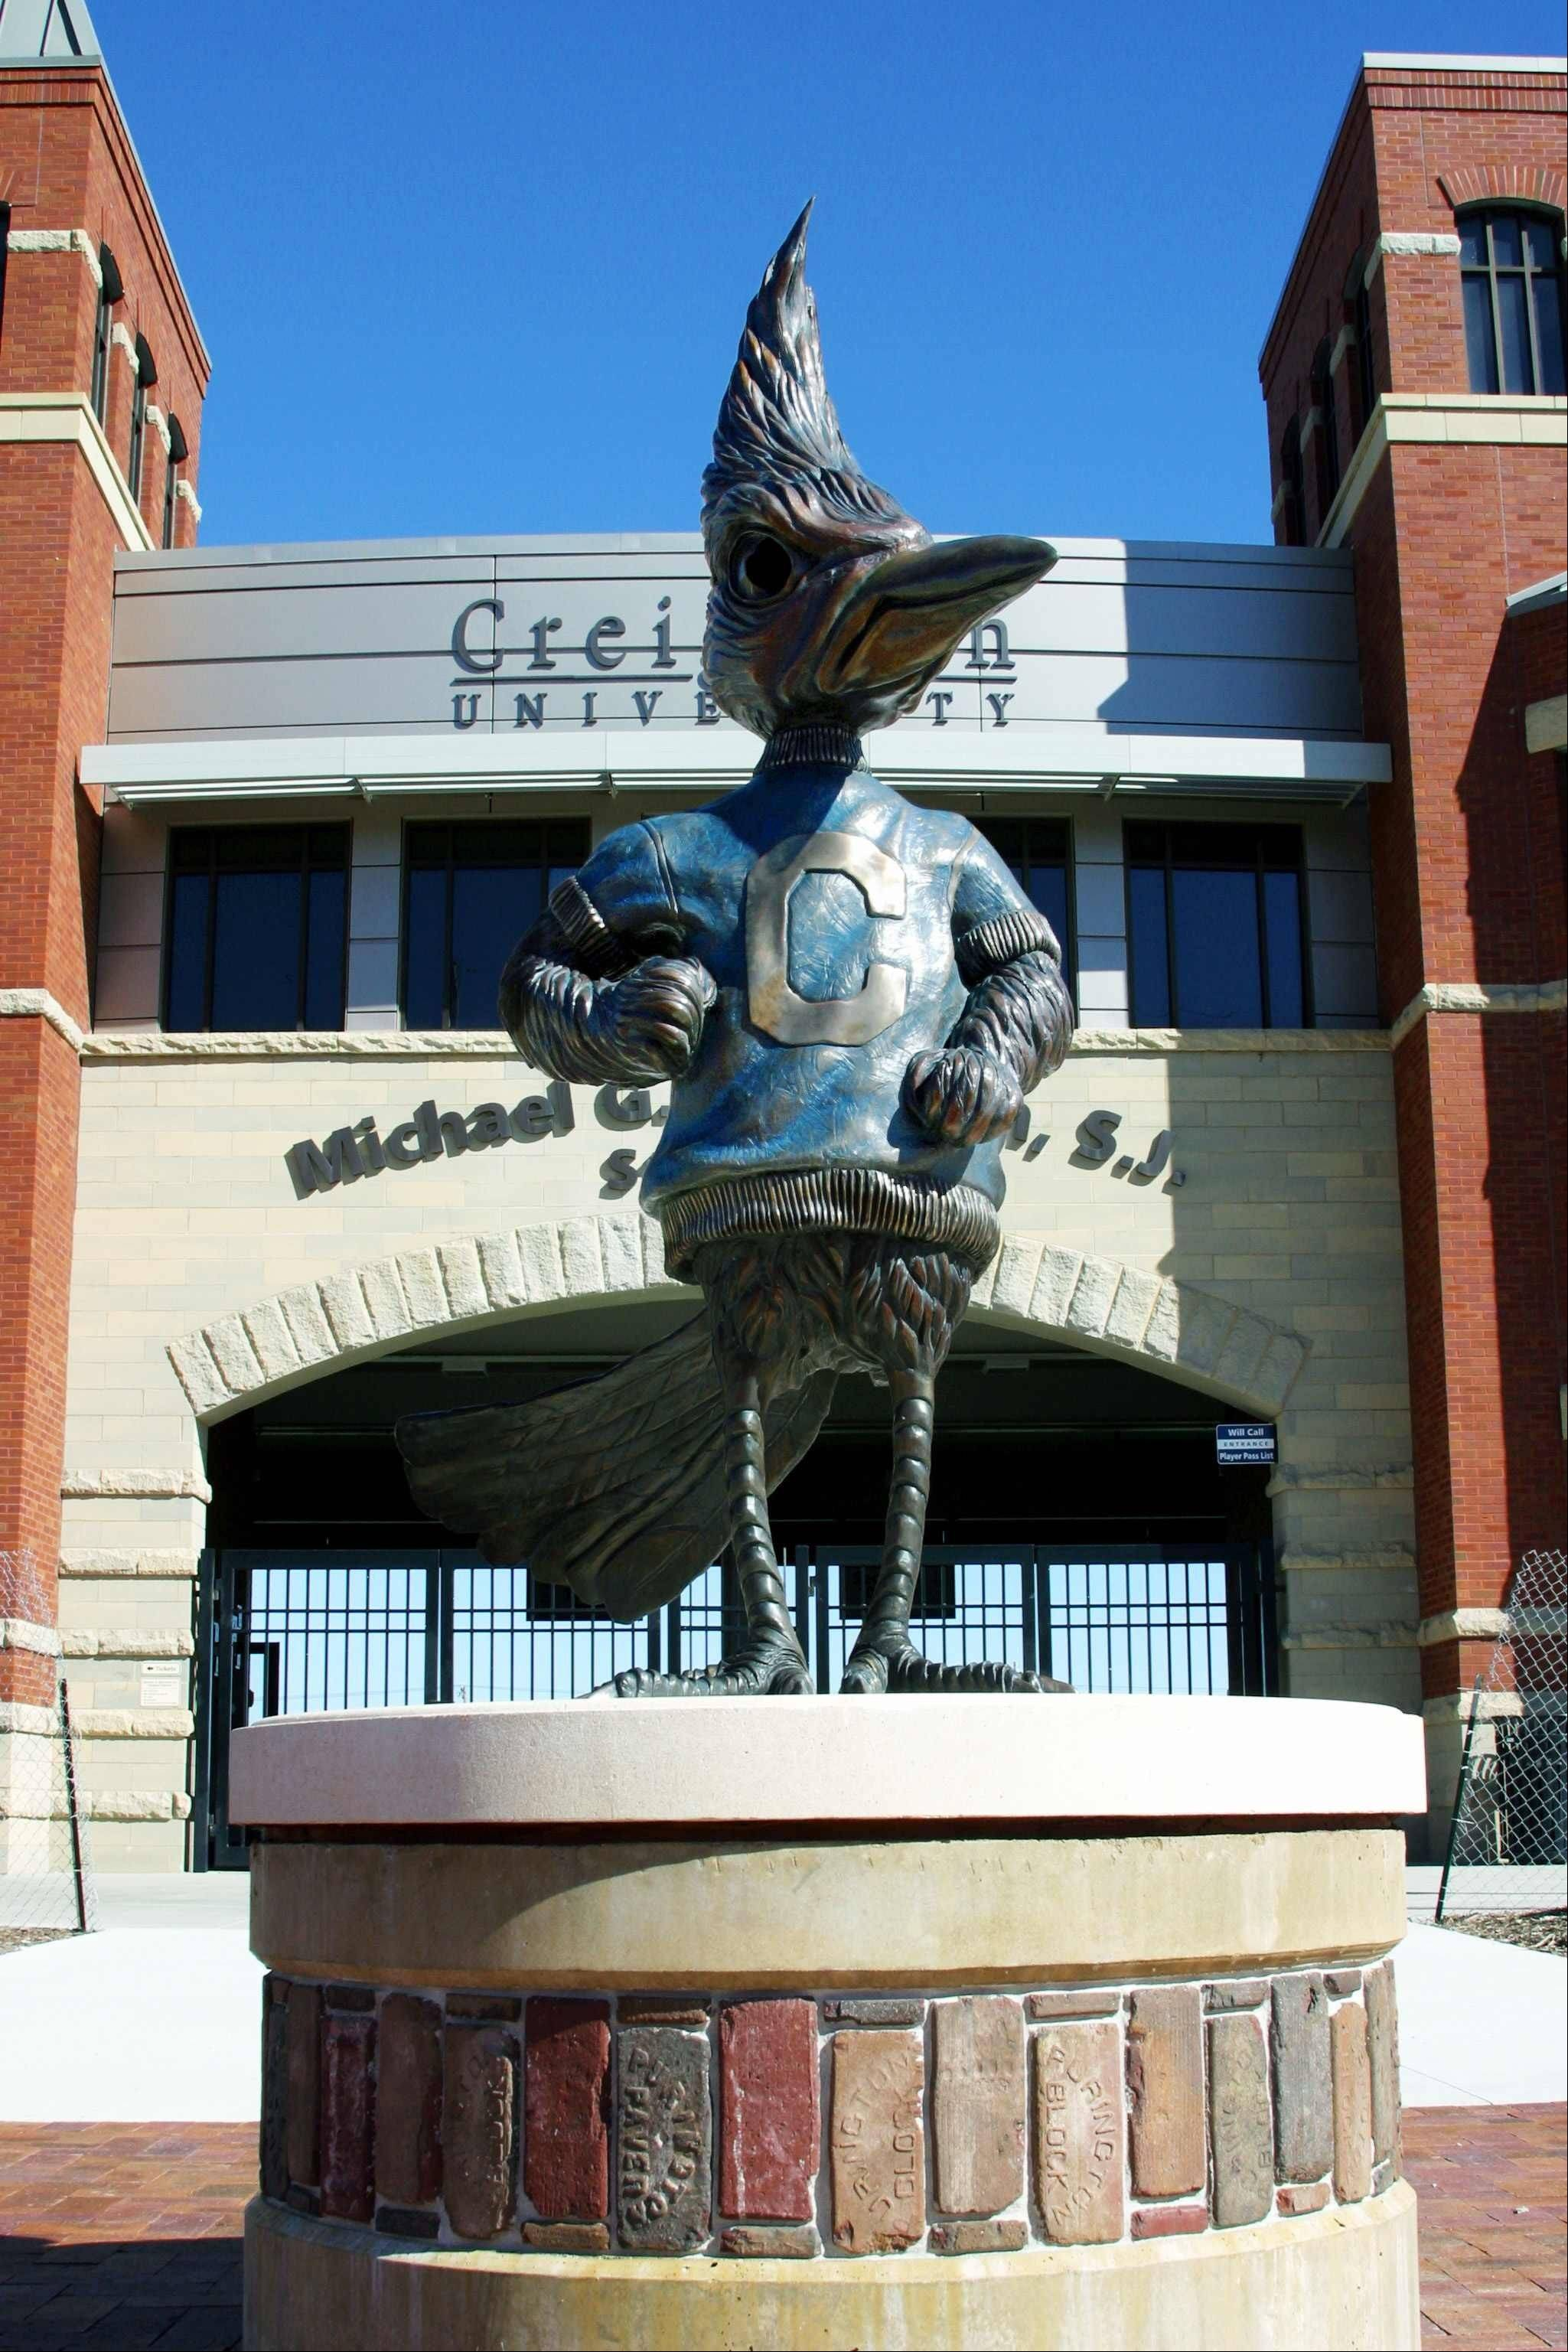 Artist Matthew Placzek has created sculptures of sports team mascots for colleges nationwide, including Billy Bluejay at Creighton University in Omaha. Placzek sent a postcard of that sculpture to College of DuPage President Robert Breuder, who was so impressed with Placzek's work that he's asked him to create a sculpture of COD's mascot, the chaparral.